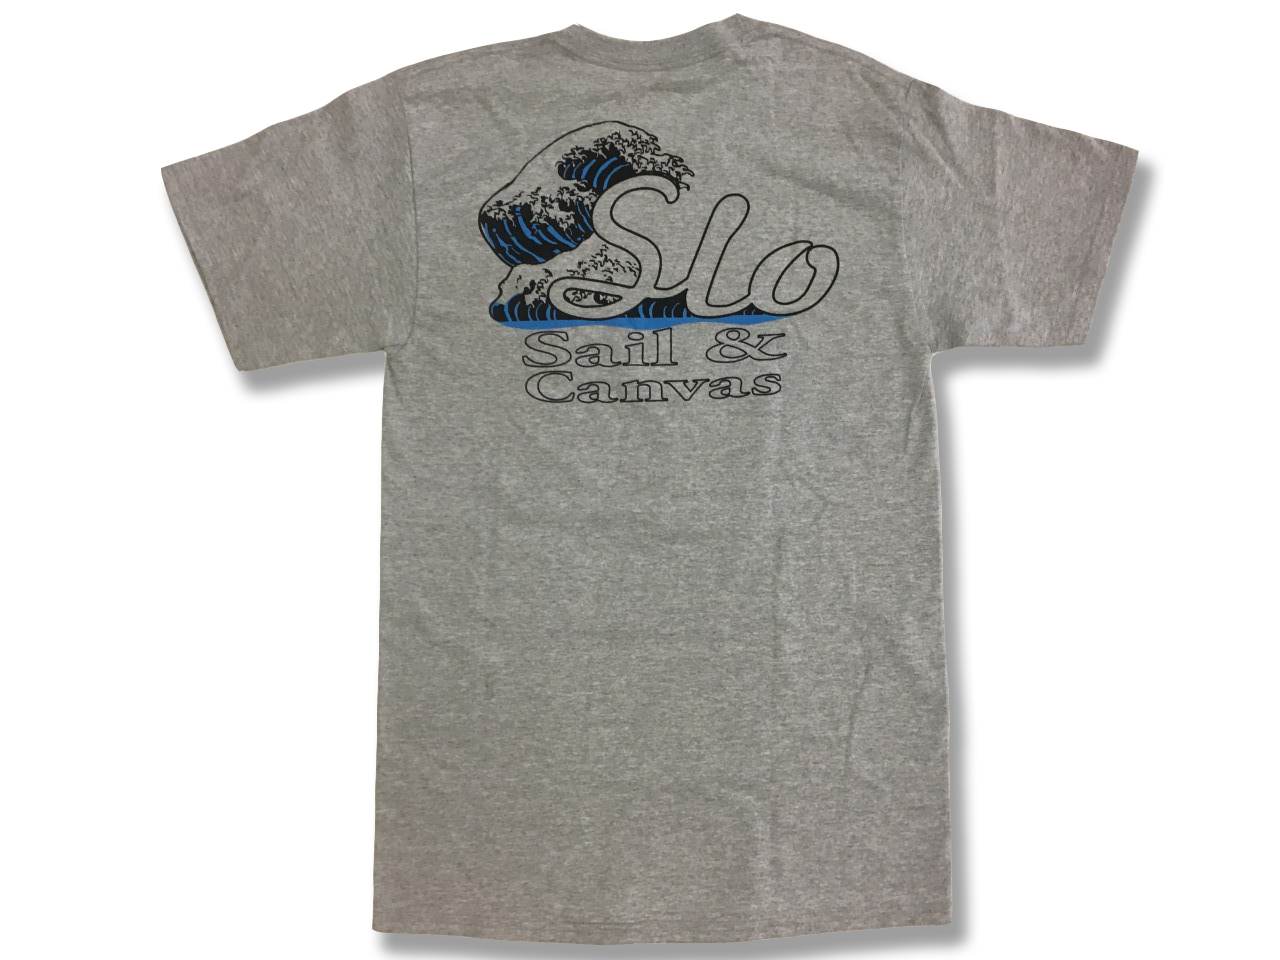 SLO Sail and Canvas T Shirt. Great to give to a sailor as a gift - or treat yourself to a comfortable lightweight T shirt! Shown in Premium Heather.